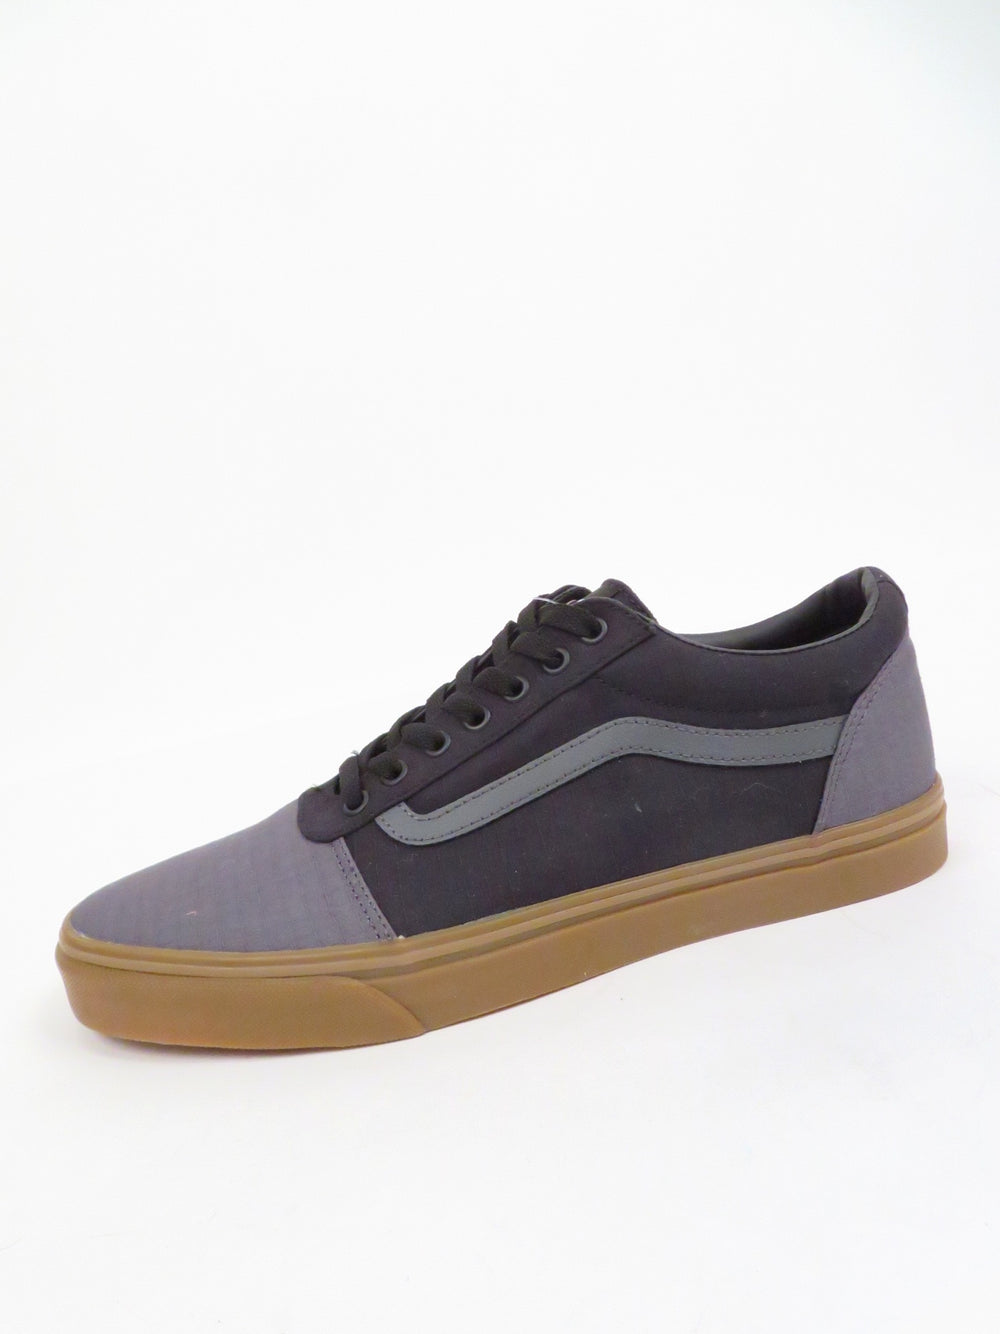 vans old skool ripstop canvas shoes. features branding at tongue/heel with signature stripe at sides. top flat lace closure and vulcanized waffle grip sole.